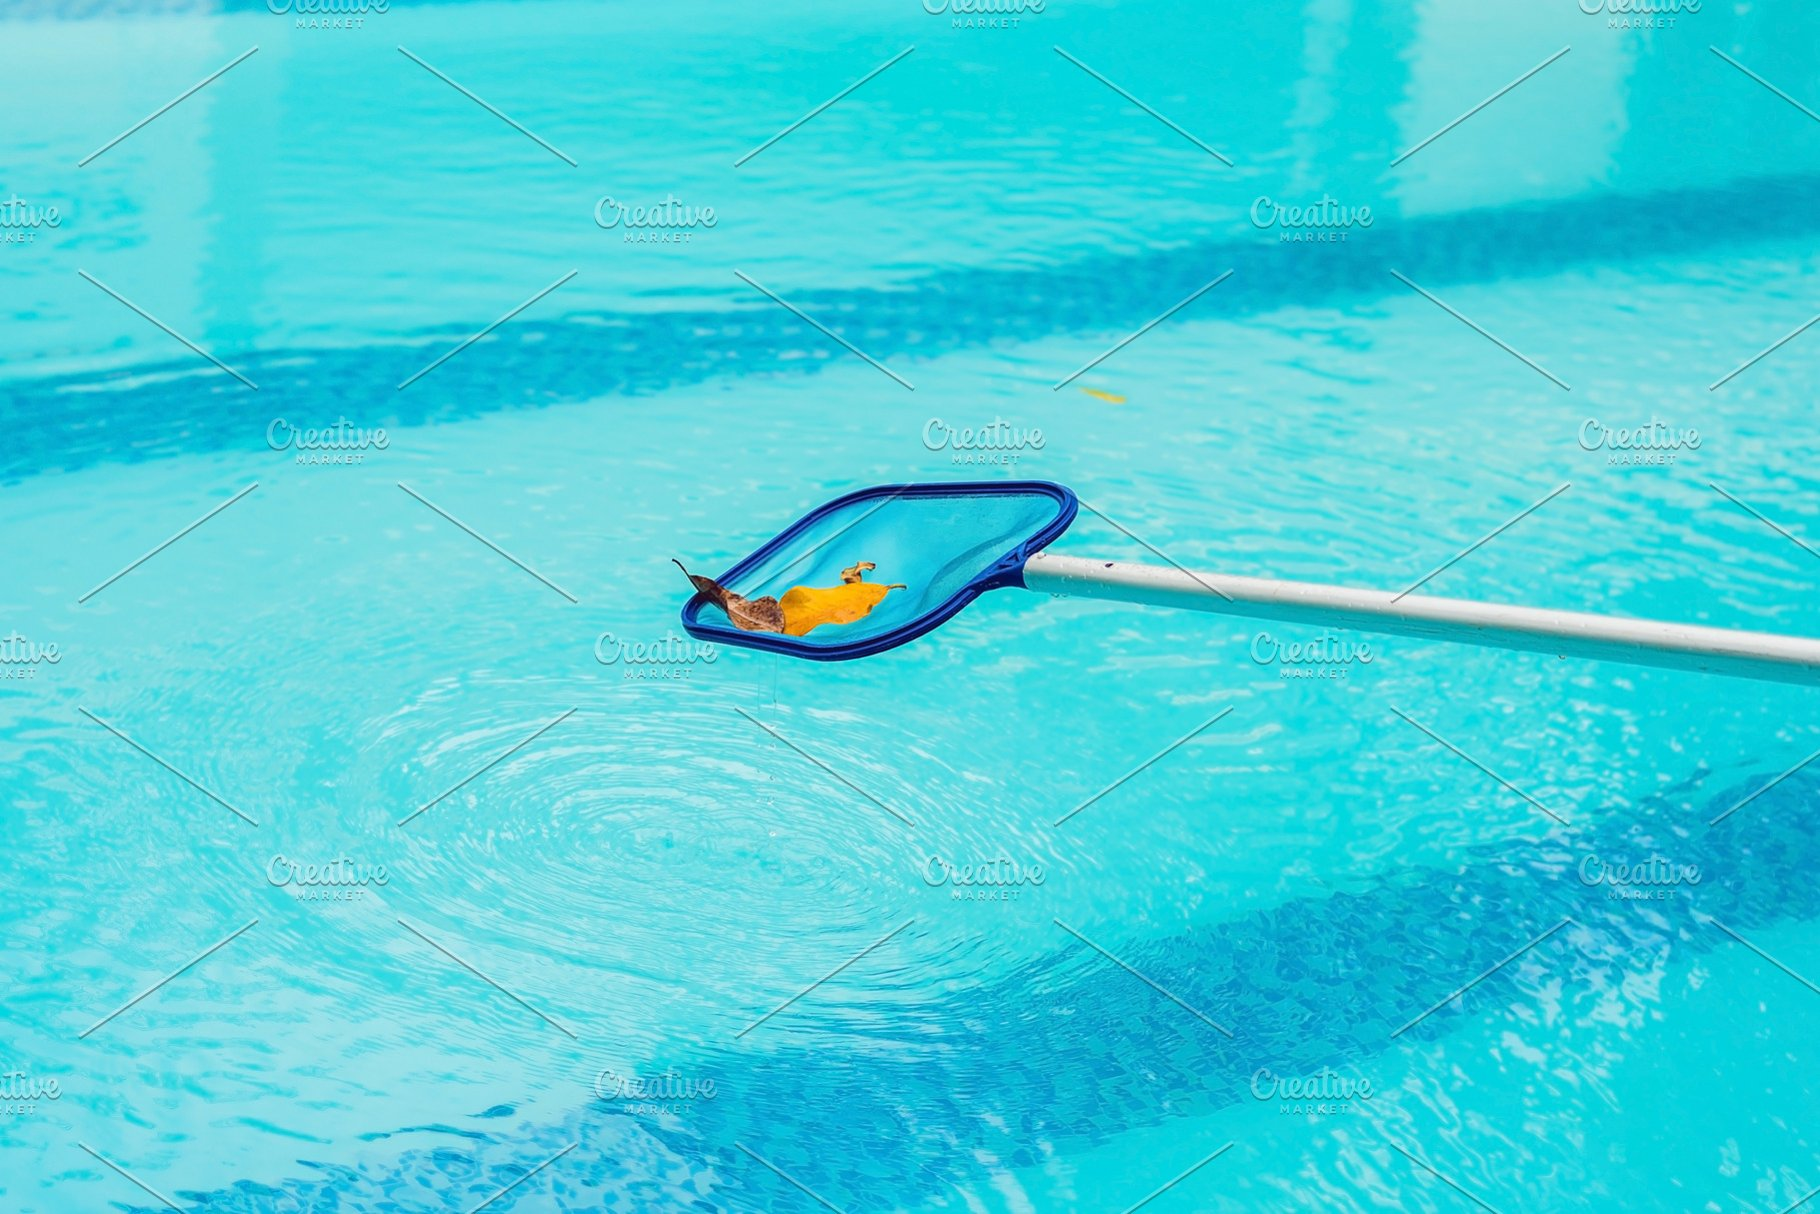 Cleaning swimming pool with cleaning net in the morning